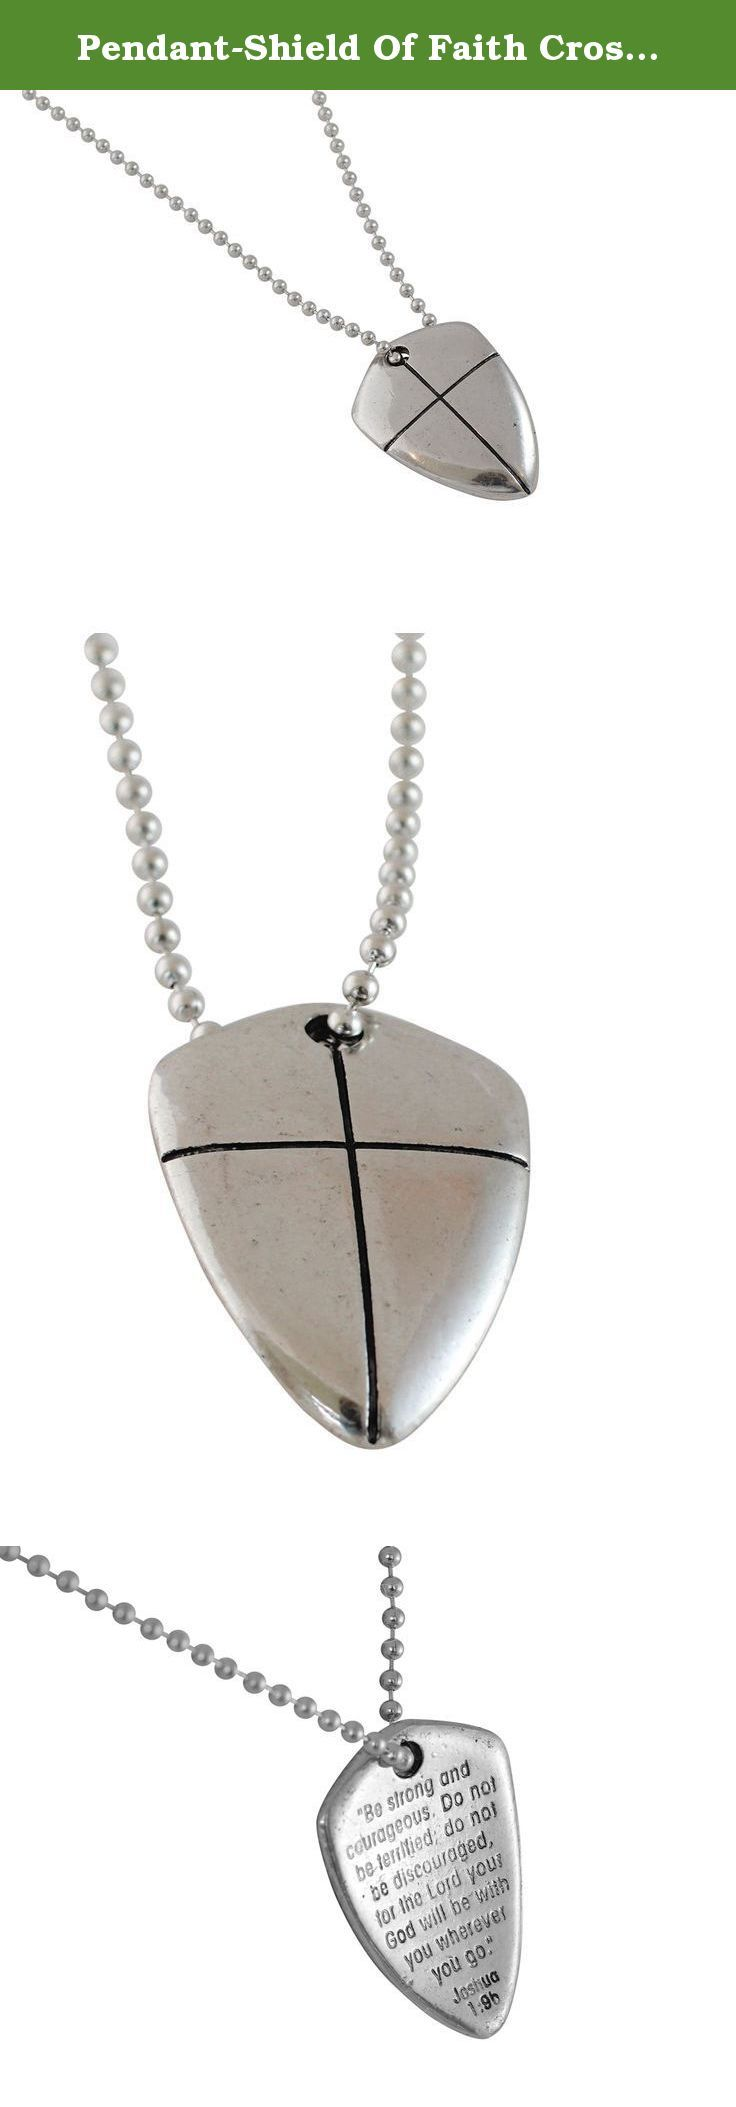 Pendant shield of faith cross 24 chain necklace pendant shield pendant shield of faith cross 24 chain necklace pendant shield of faith cross 24 chain necklace pinterest religious jewelry aloadofball Choice Image